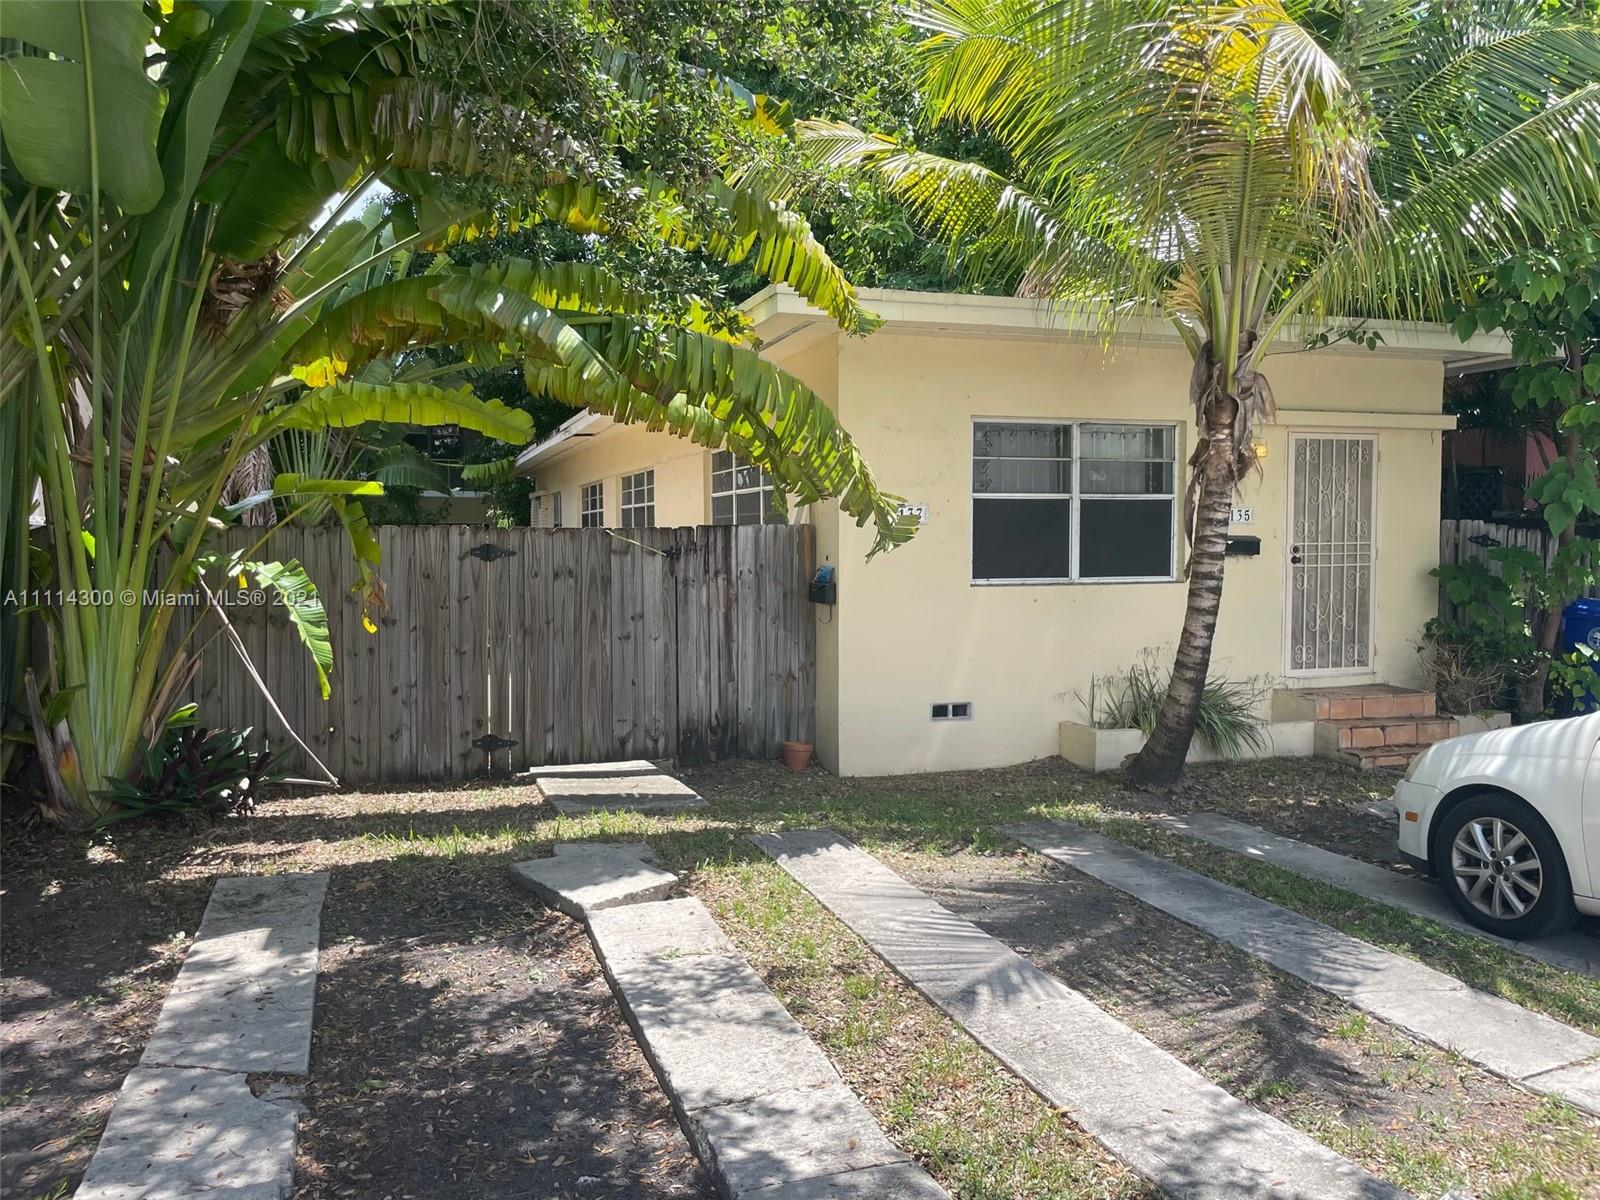 3135  New York St #2 For Sale A11114300, FL